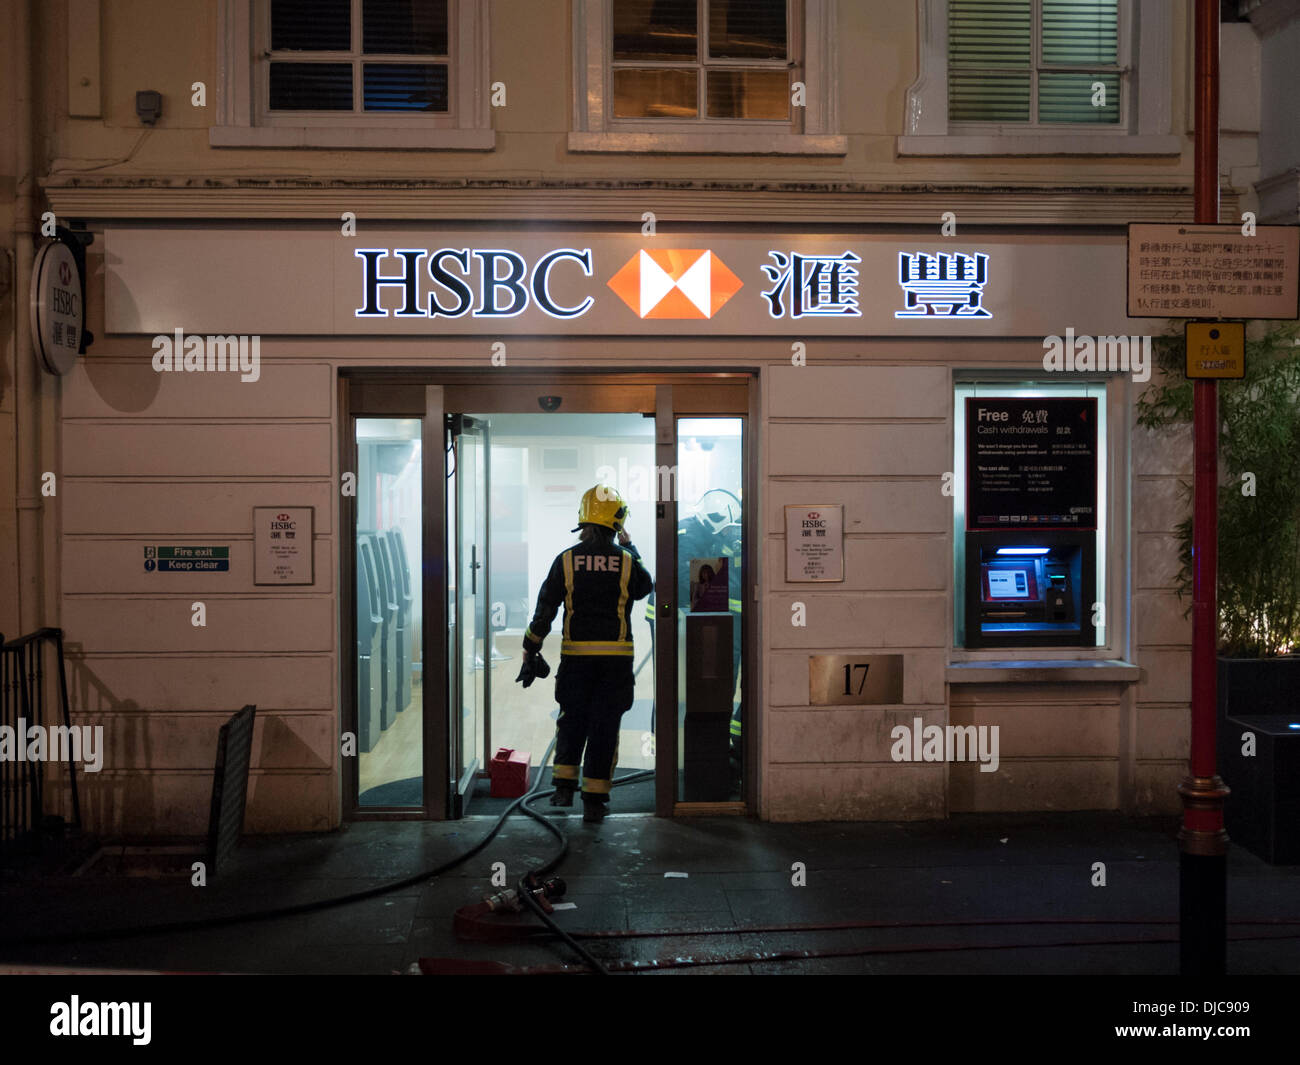 The Fire Service attend a smoke filled HSBC Bank Gerrard Street London UK 26th November 2013. The road was taped off at around 7.15pm as crowds watched the fire crews investigate and deal with the cause of the smoke. Credit Julian Eales/Alamy Live News - Stock Image